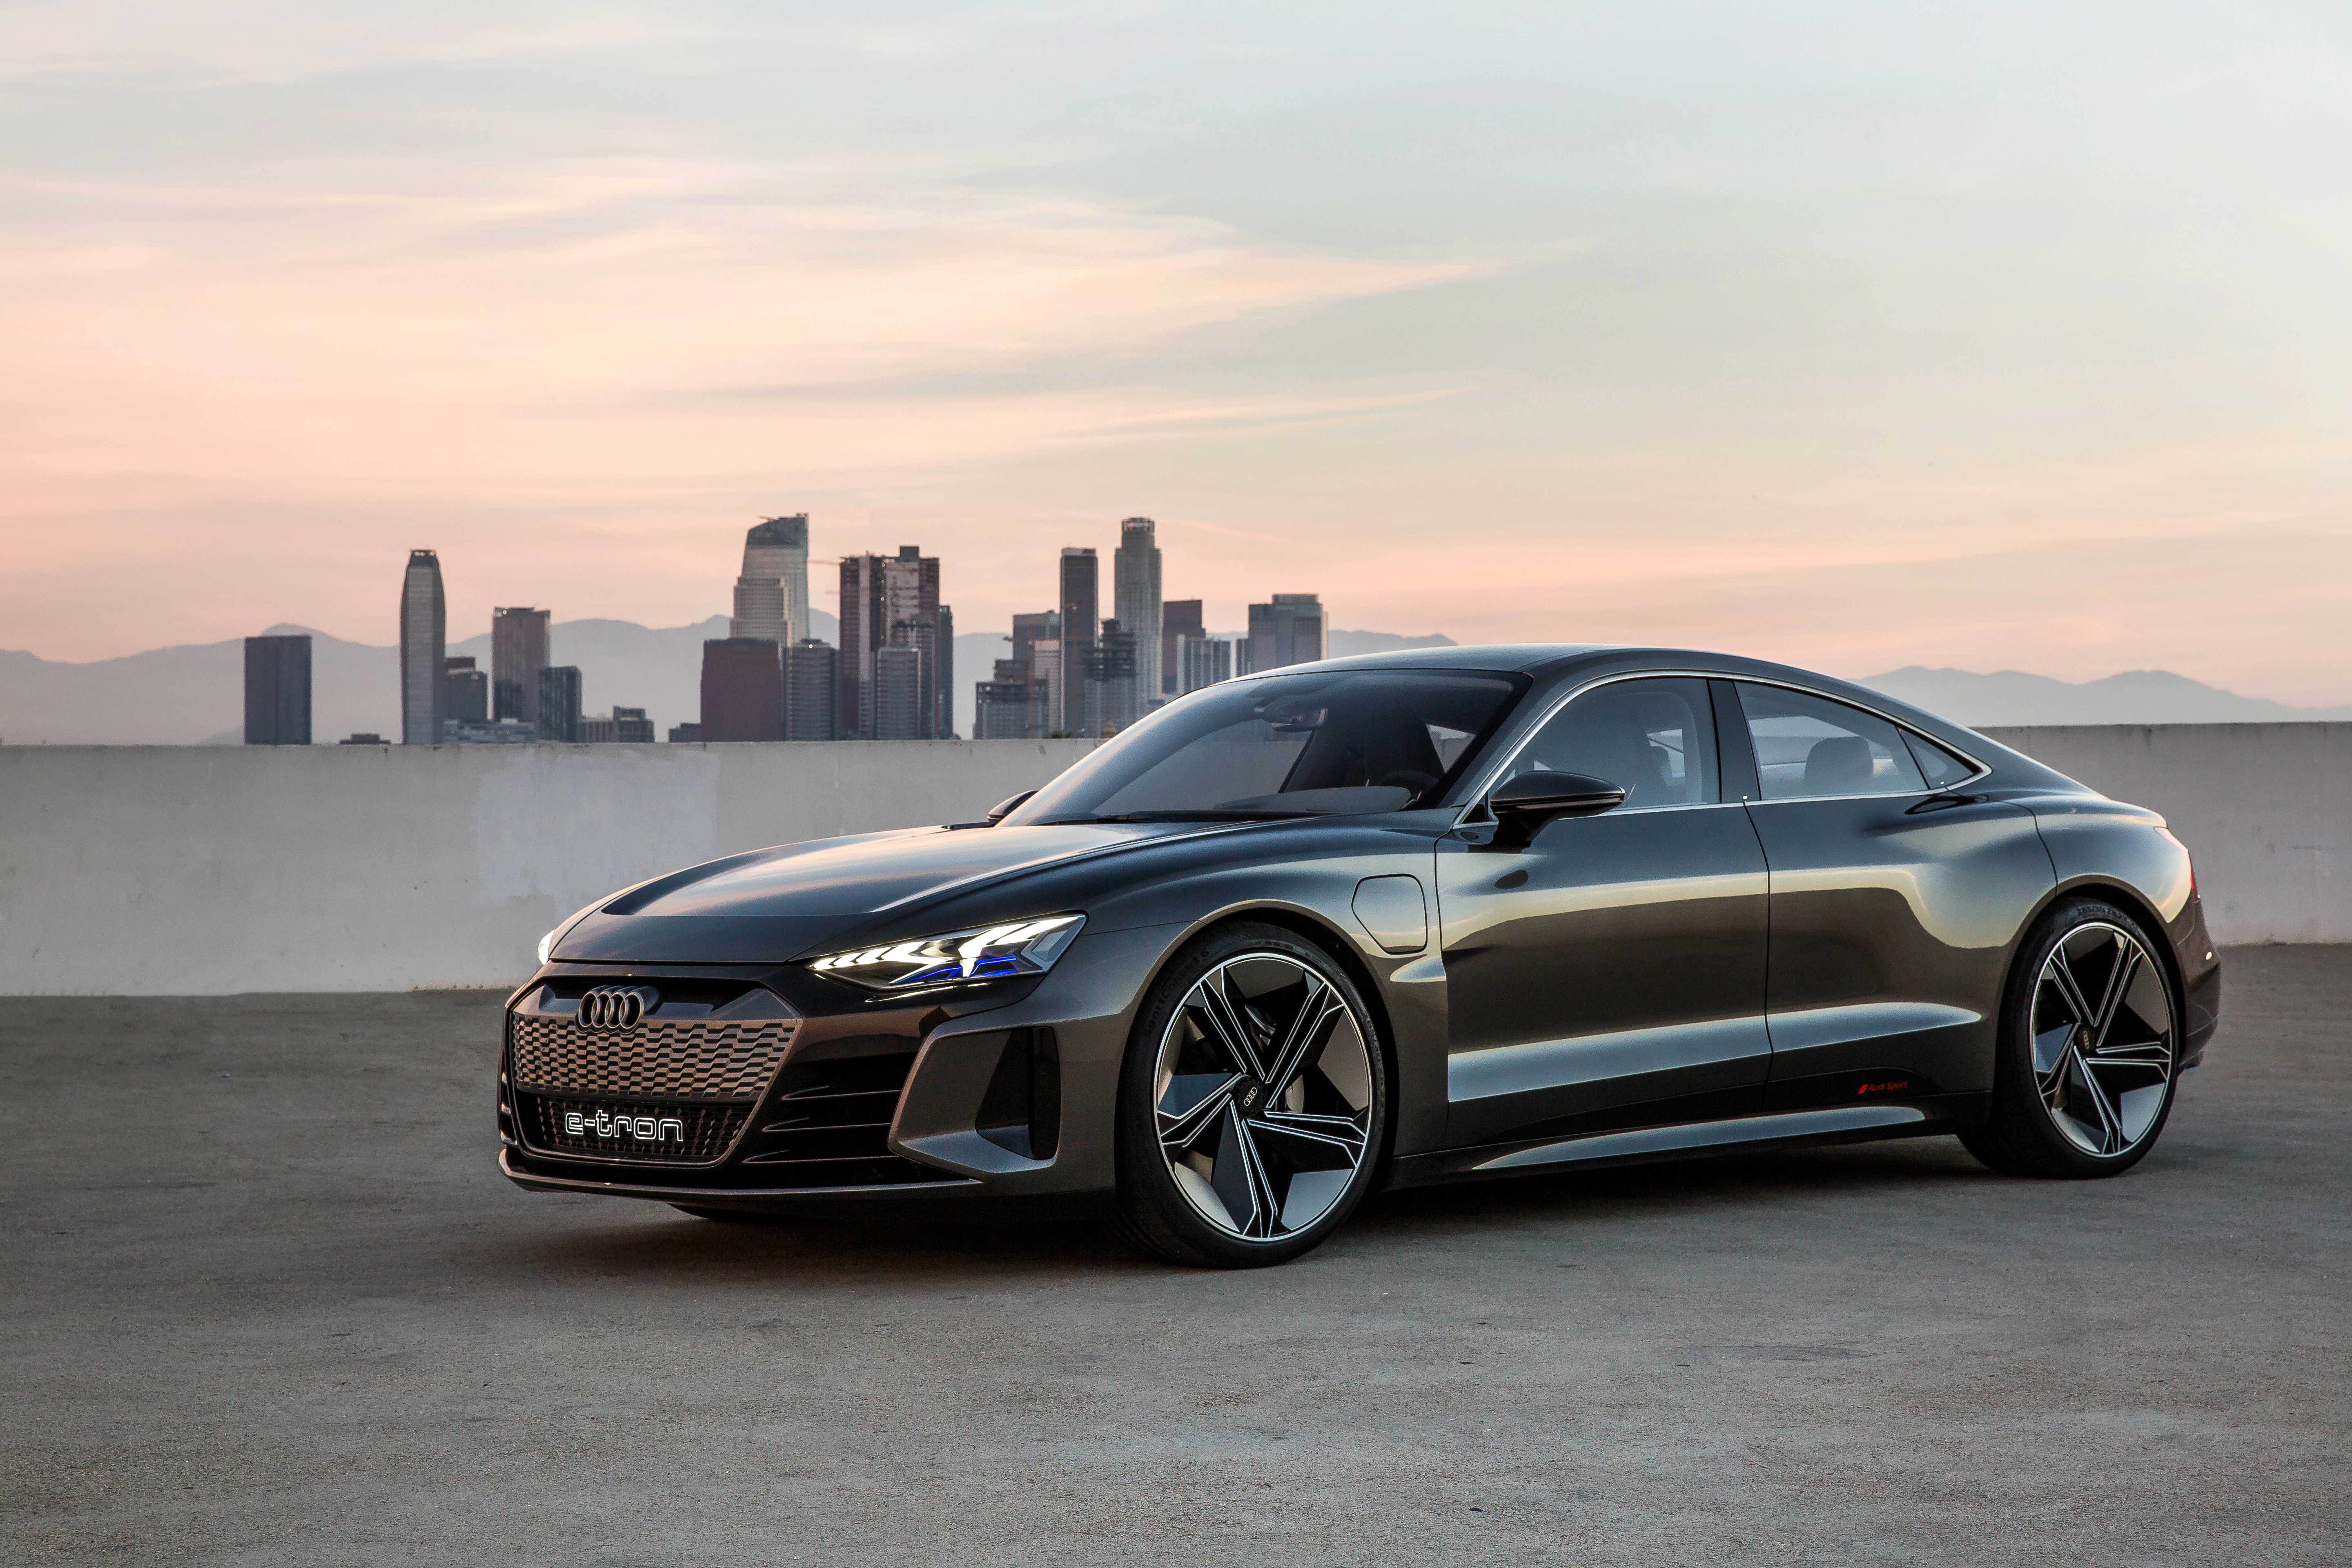 Audis Gorgeous E Tron Gt Concept Makes Huge Splash At The La Auto Automations Motor Control Circuits High Torque Speed Here Is Audi